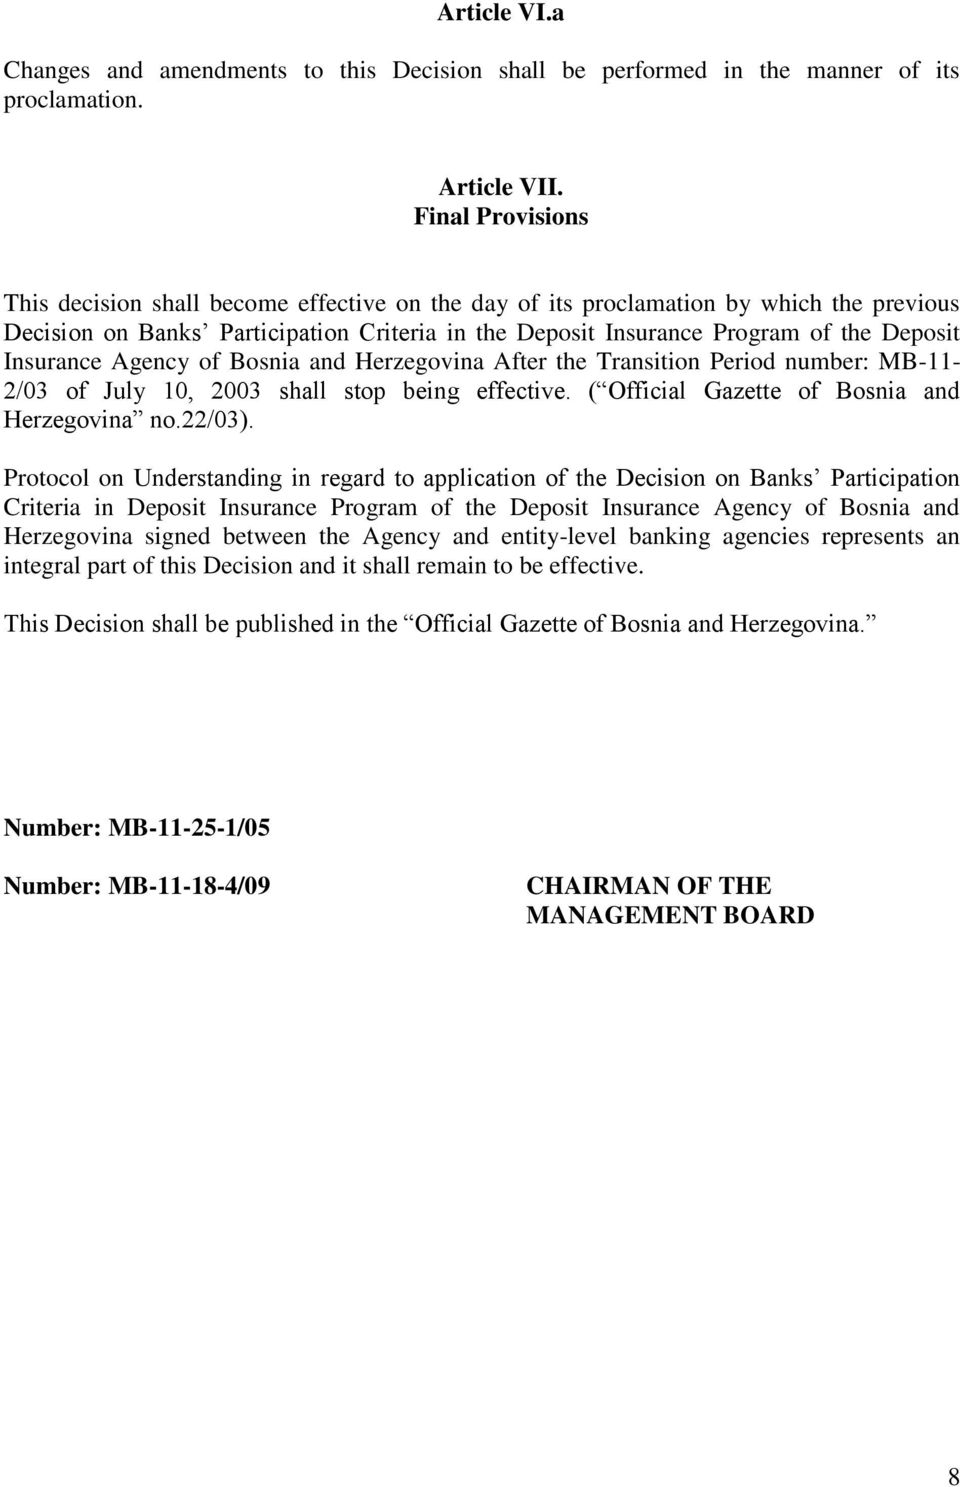 Insurance Agency of Bosnia and Herzegovina After the Transition Period number: MB-11-2/03 of July 10, 2003 shall stop being effective. ( Official Gazette of Bosnia and Herzegovina no.22/03).